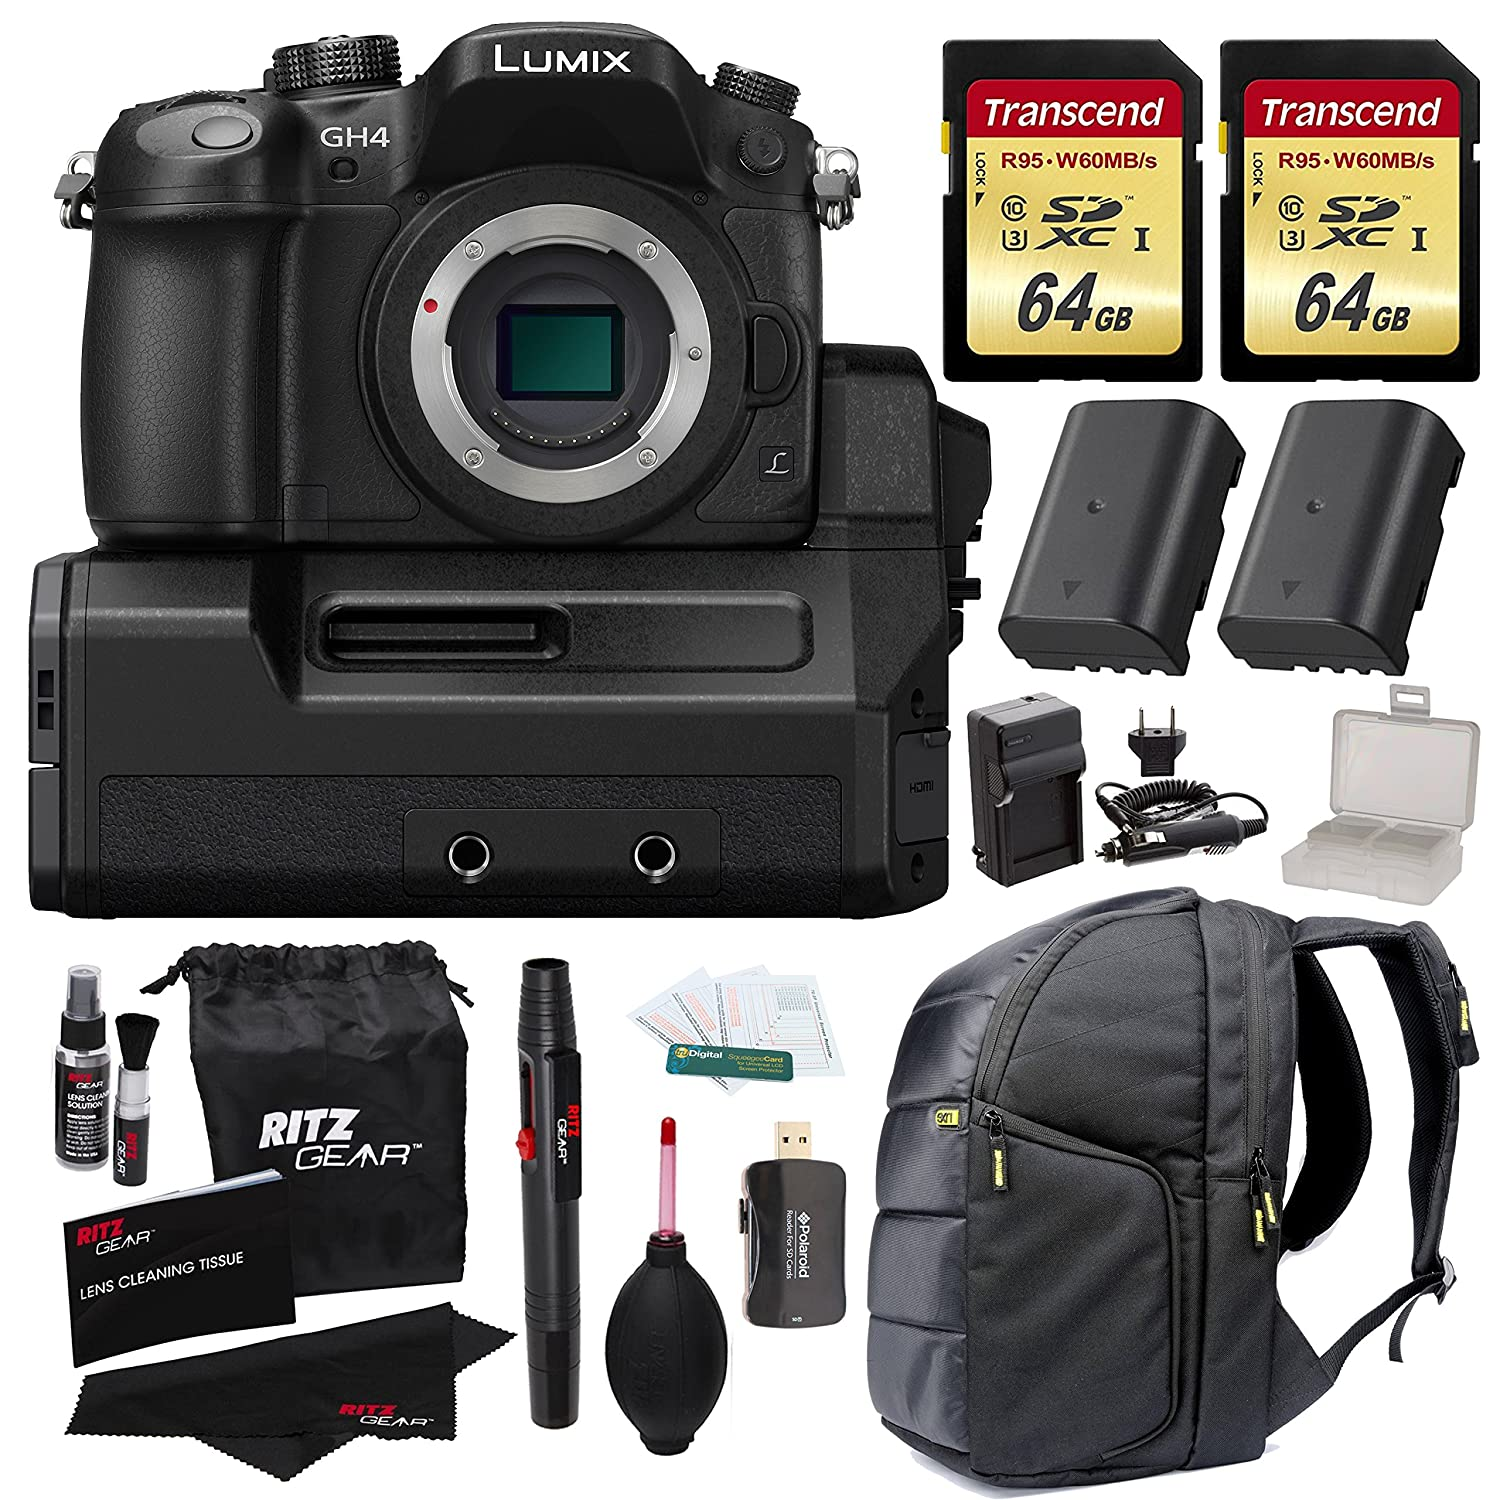 Panasonic Lumix DMC-GH4 Mirrorless MIcro 4/3 Digital Camera with DMW-YAGH 4K Video Interface Compact System +2x Transcend 64GB U3 + 2 Batteries + Full Size Backpack + Charger + Premium Accessory Kit